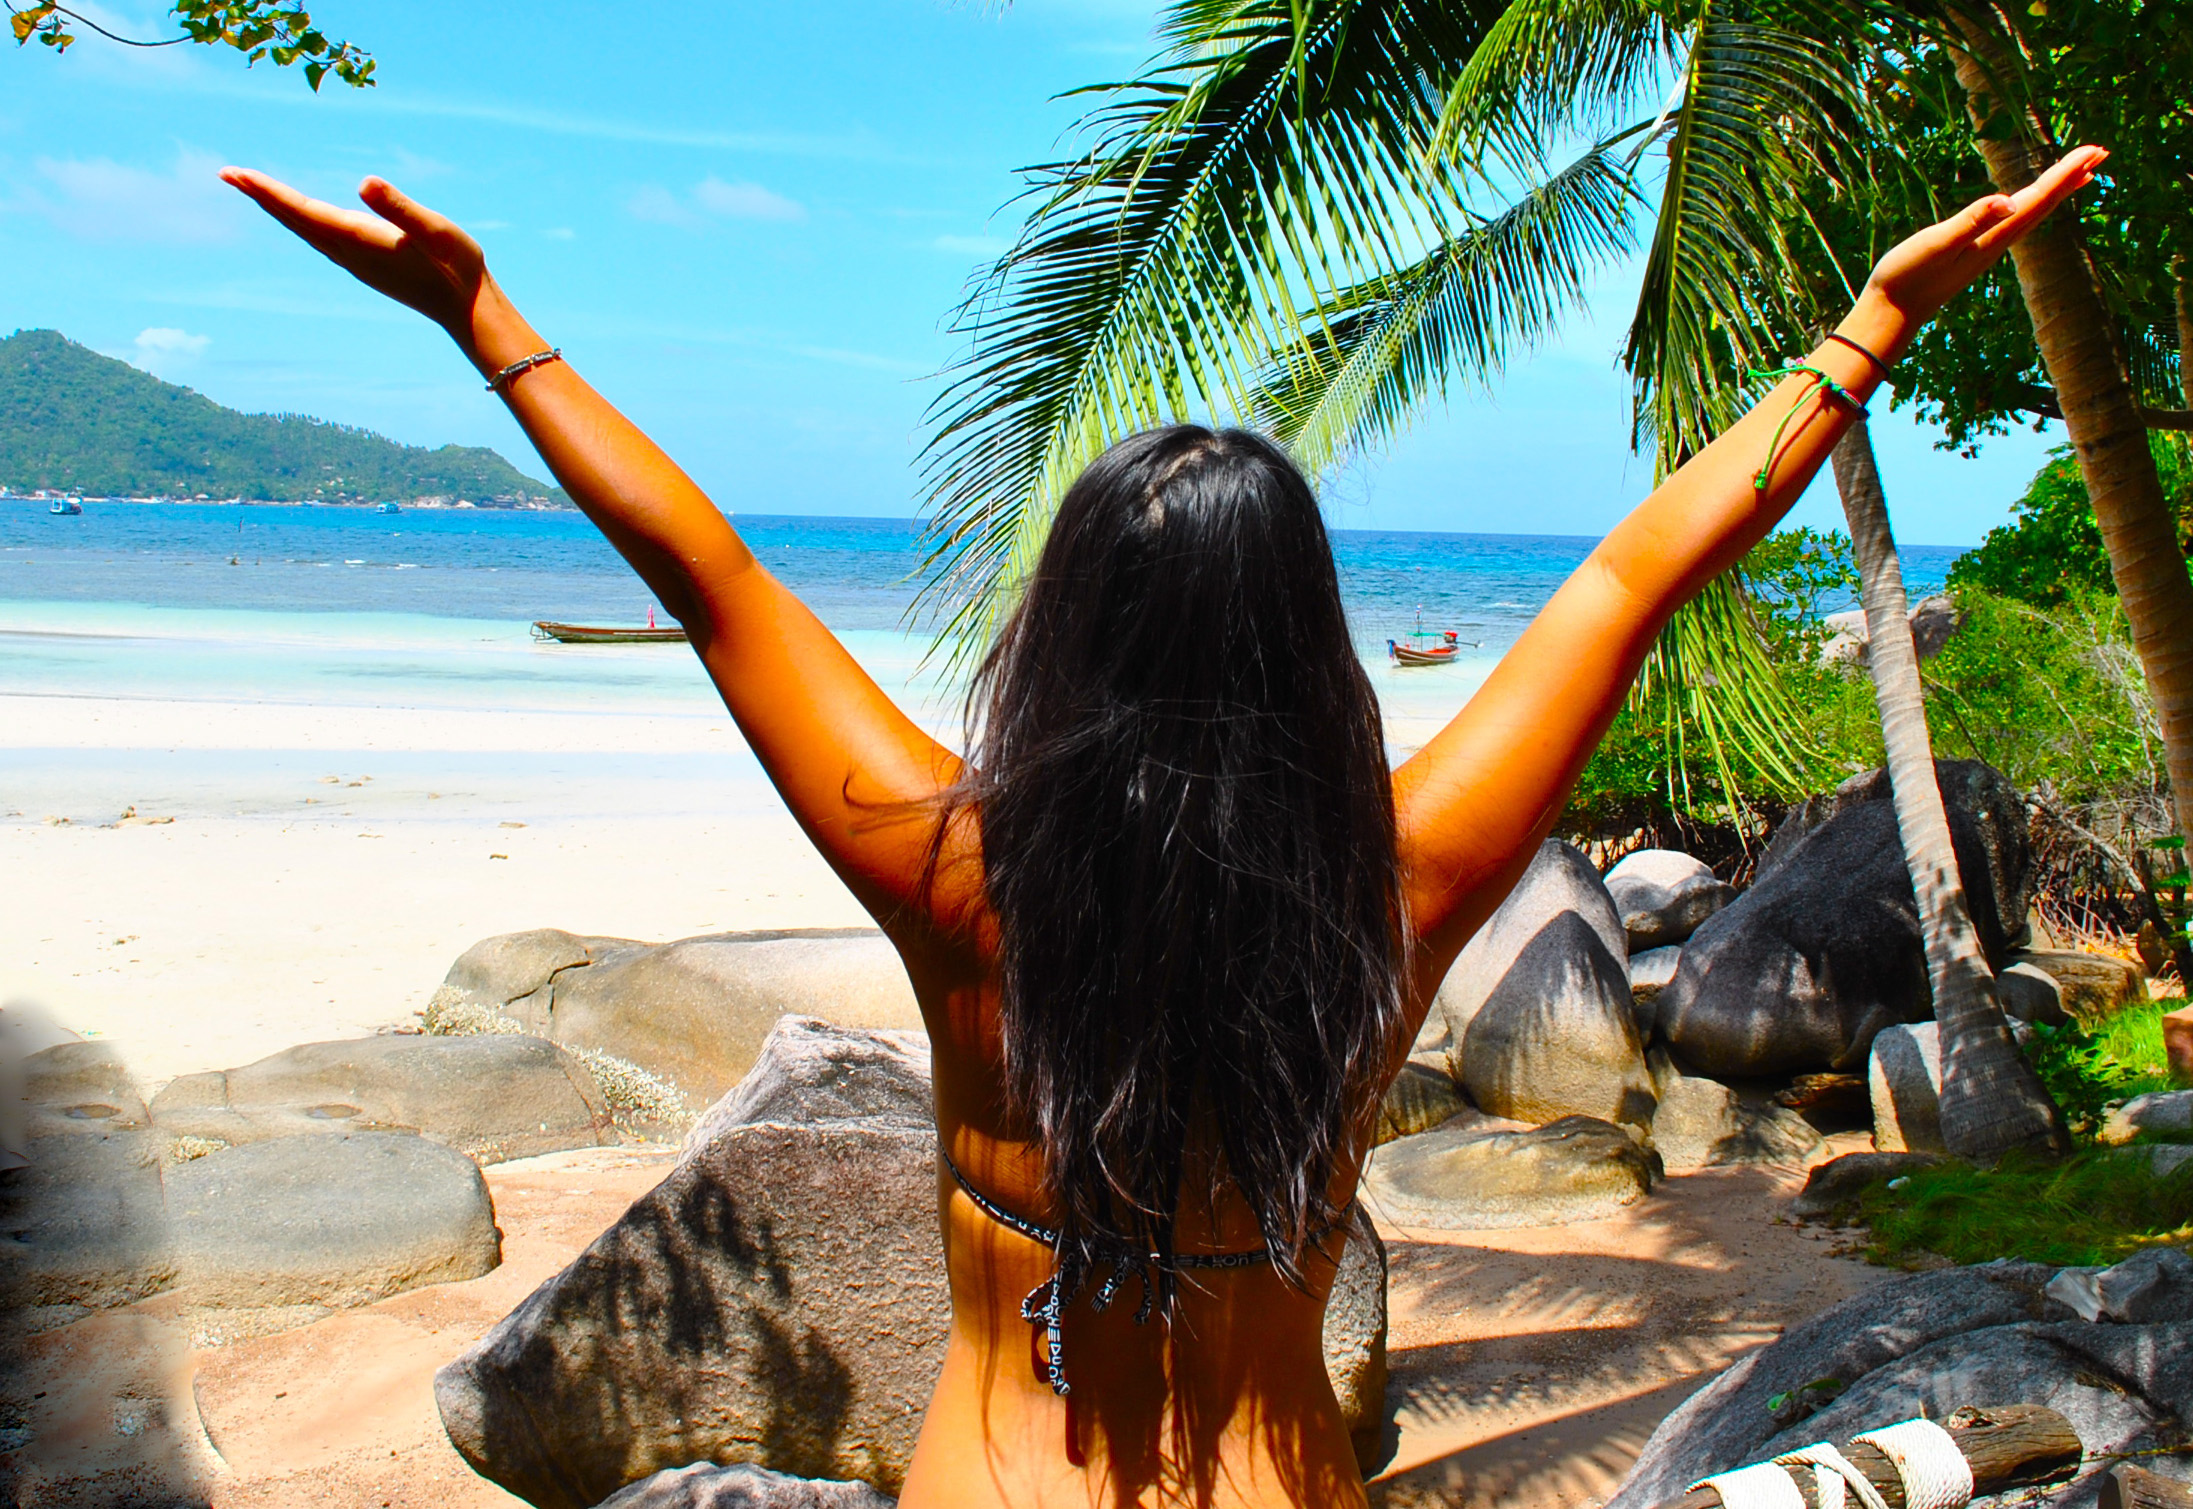 Credit Card Images >> 20 days in Thailand - A Dose of Paradise by Free & Easy Traveler with 719 Tour Reviews (Code ...